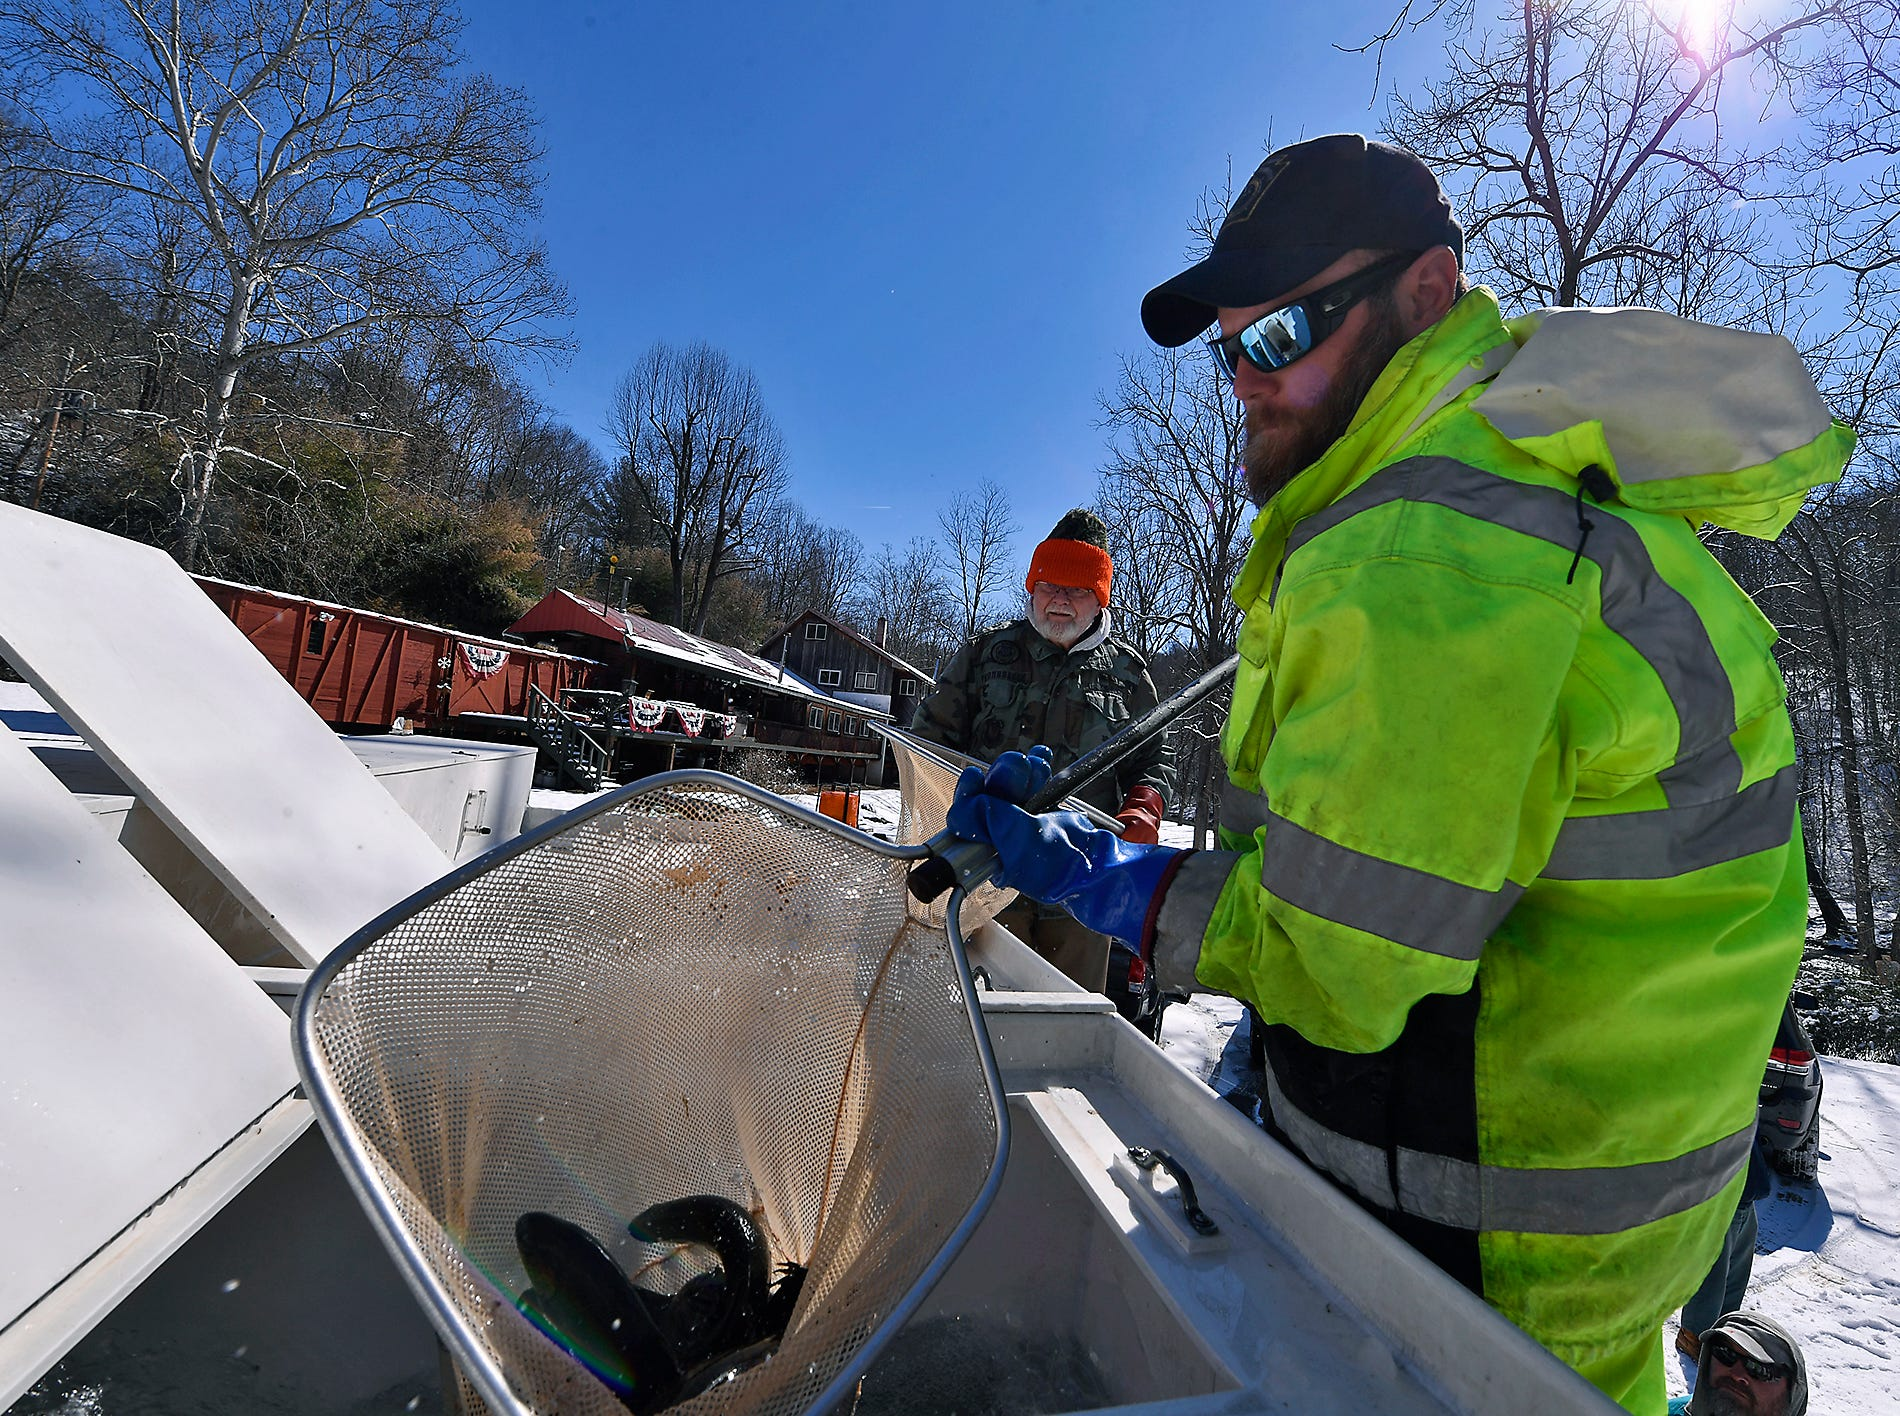 D.J. Beckey, a fish culturist with the PA Fish and Boat Commission scoops up nets full of brown and rainbow trout to be stocked by volunteers from local sportsman's groups in Muddy Creek in southeastern York County, Tuesday, March 5, 2019. The stocking was the first of several that will happen before trout season opens on March 30.John A. Pavoncello photo